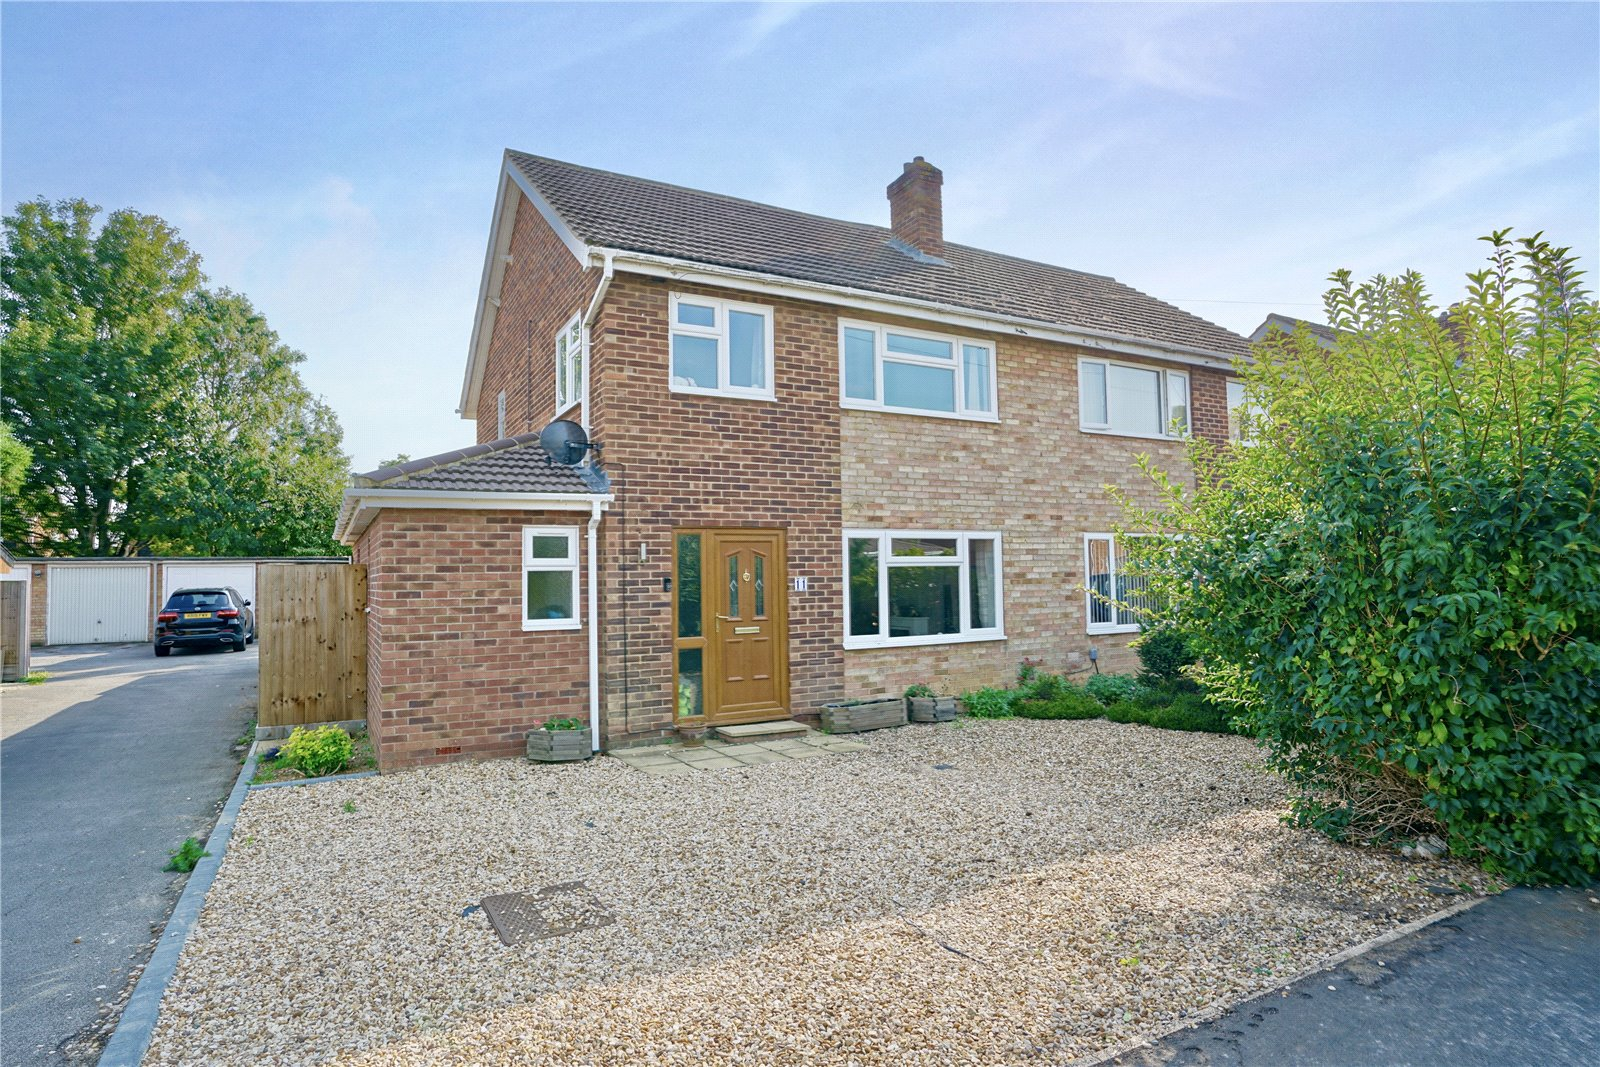 3 bed house for sale in Little Paxton, PE19 6NS, PE19